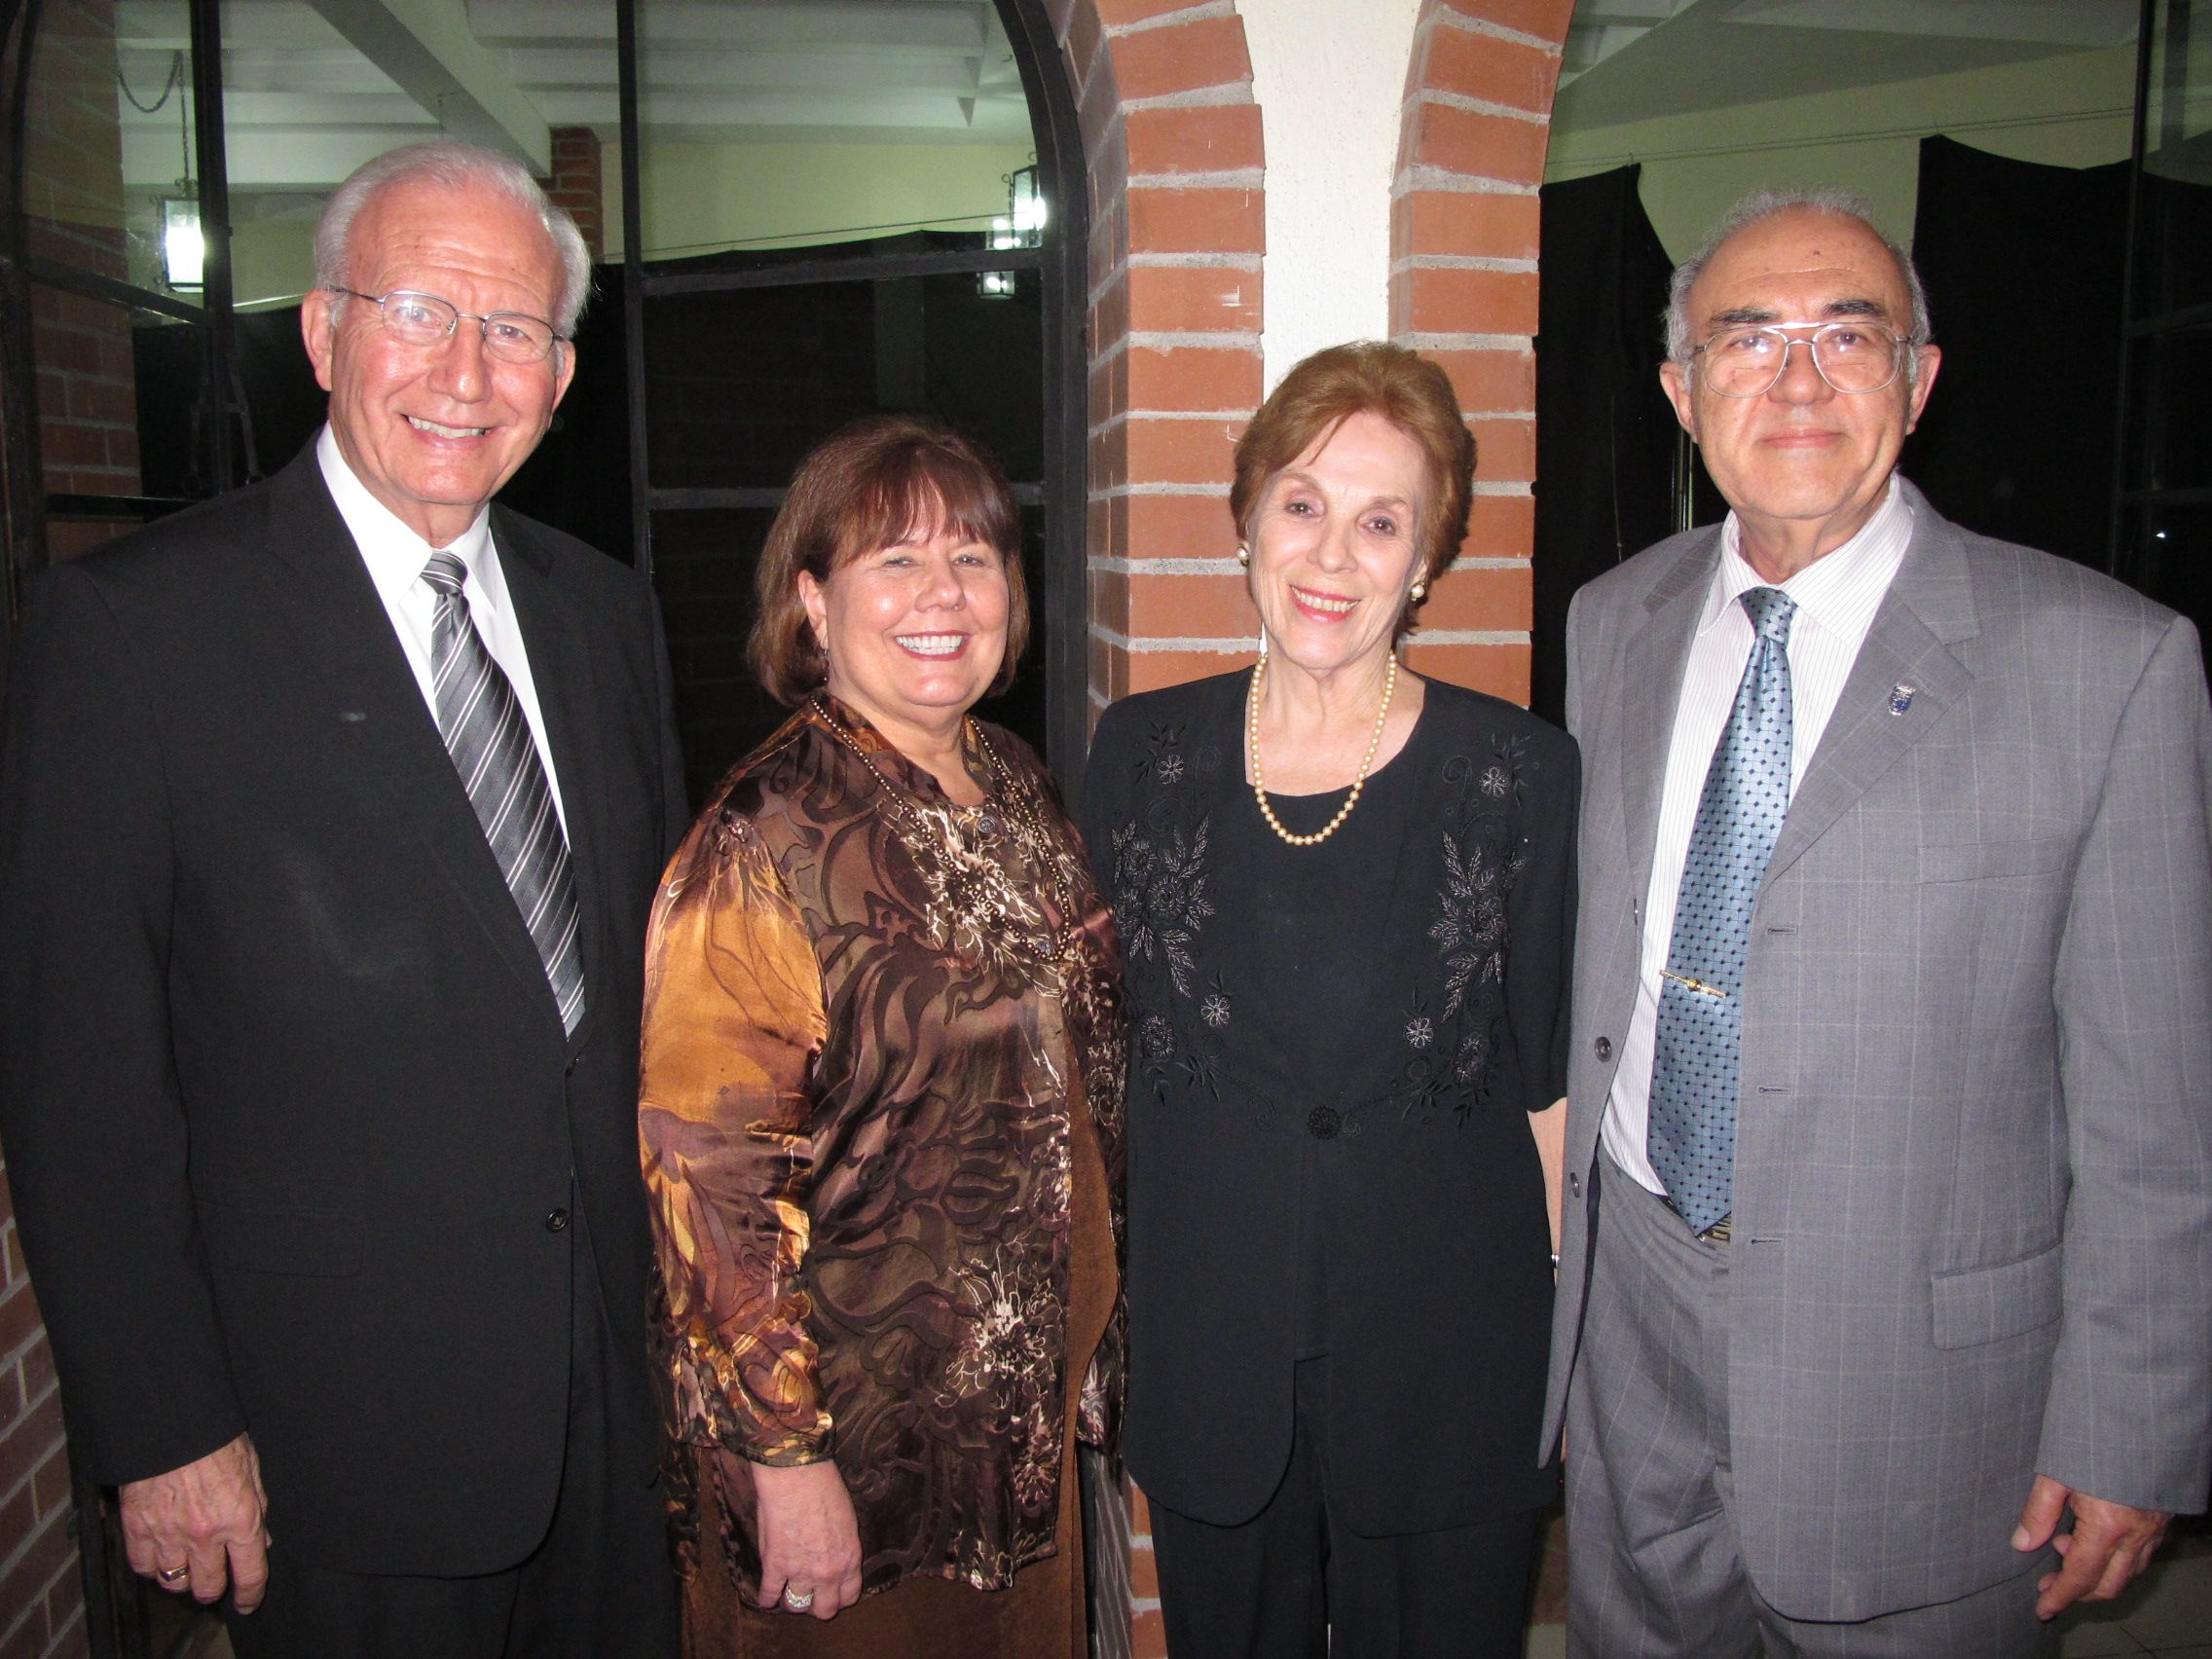 Steve and Judy Douglass with Olinda and Guillermo Luna